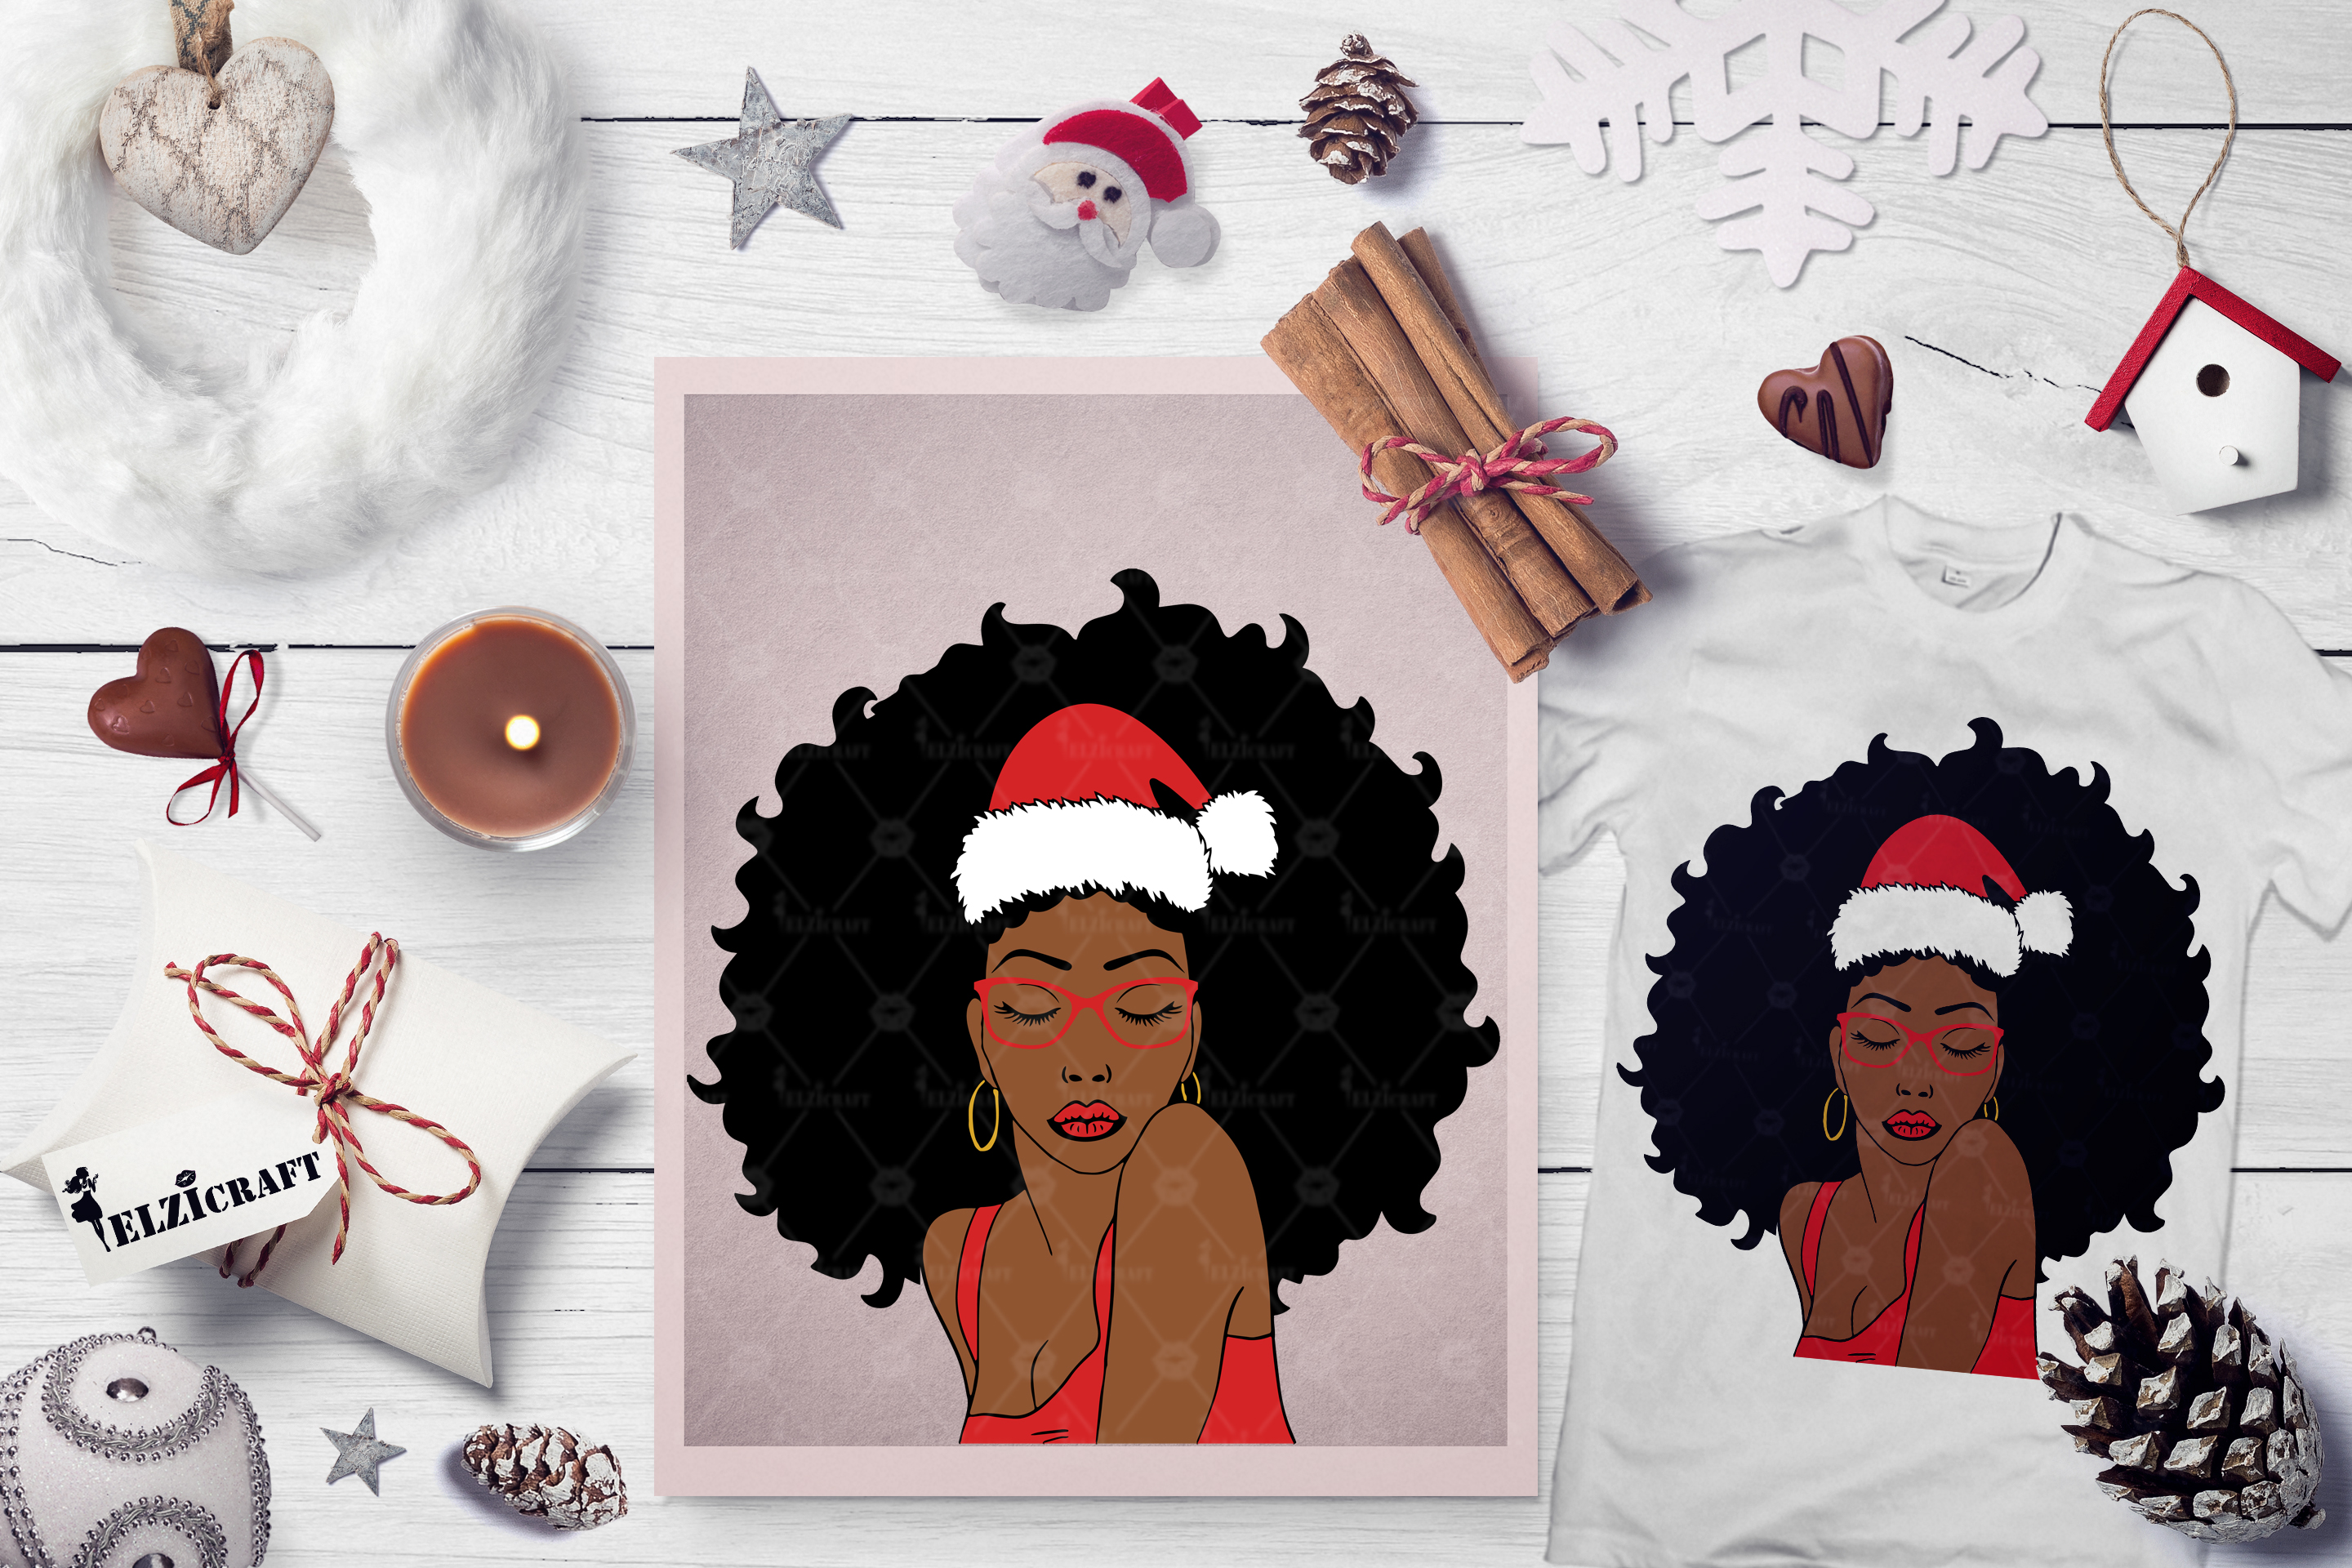 Download Free Christmas Afro Woman Santa Claus Hat Graphic By Elzicraft for Cricut Explore, Silhouette and other cutting machines.